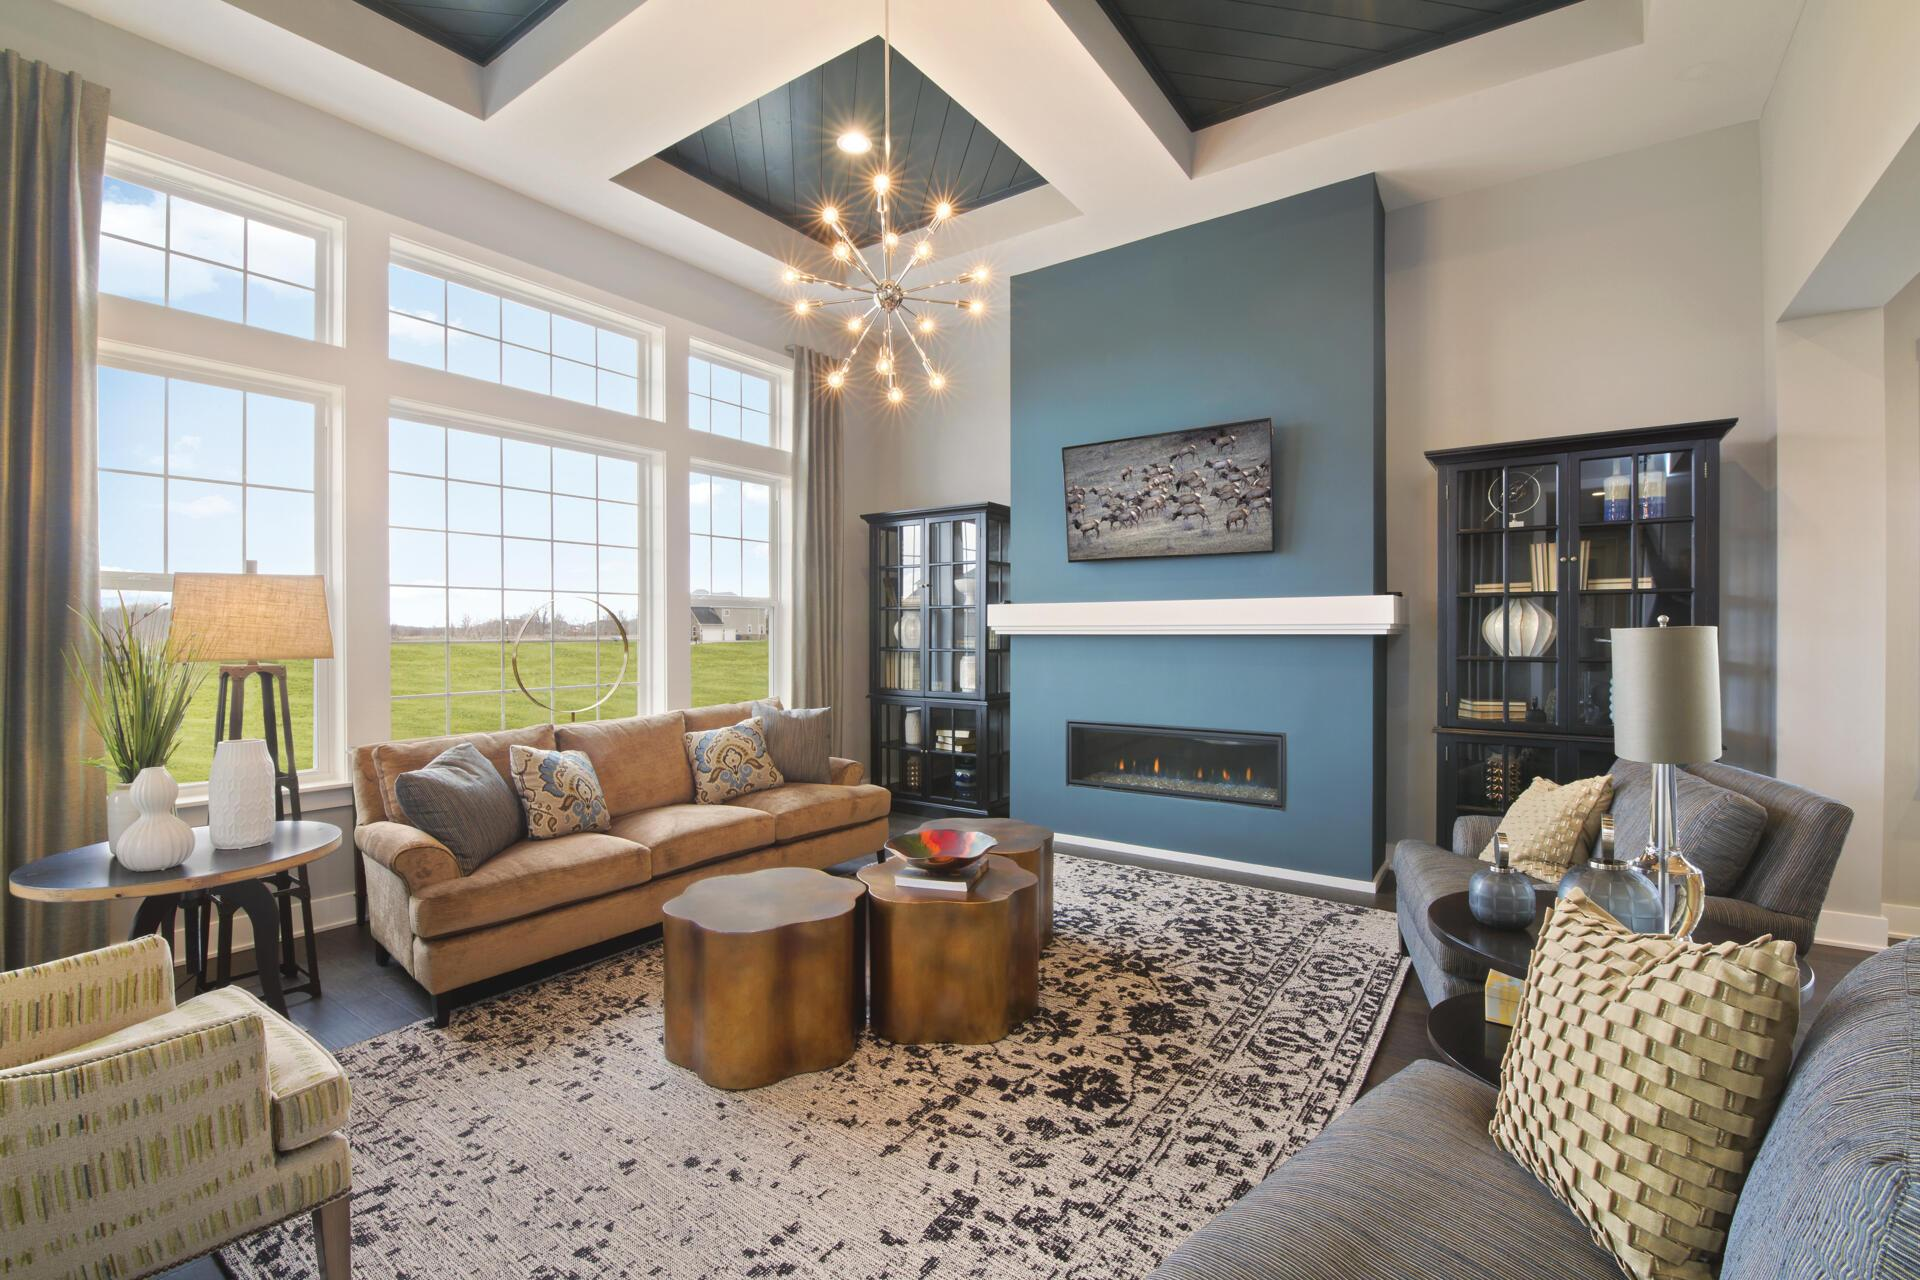 'Bent Creek' by Drees Homes in Indianapolis